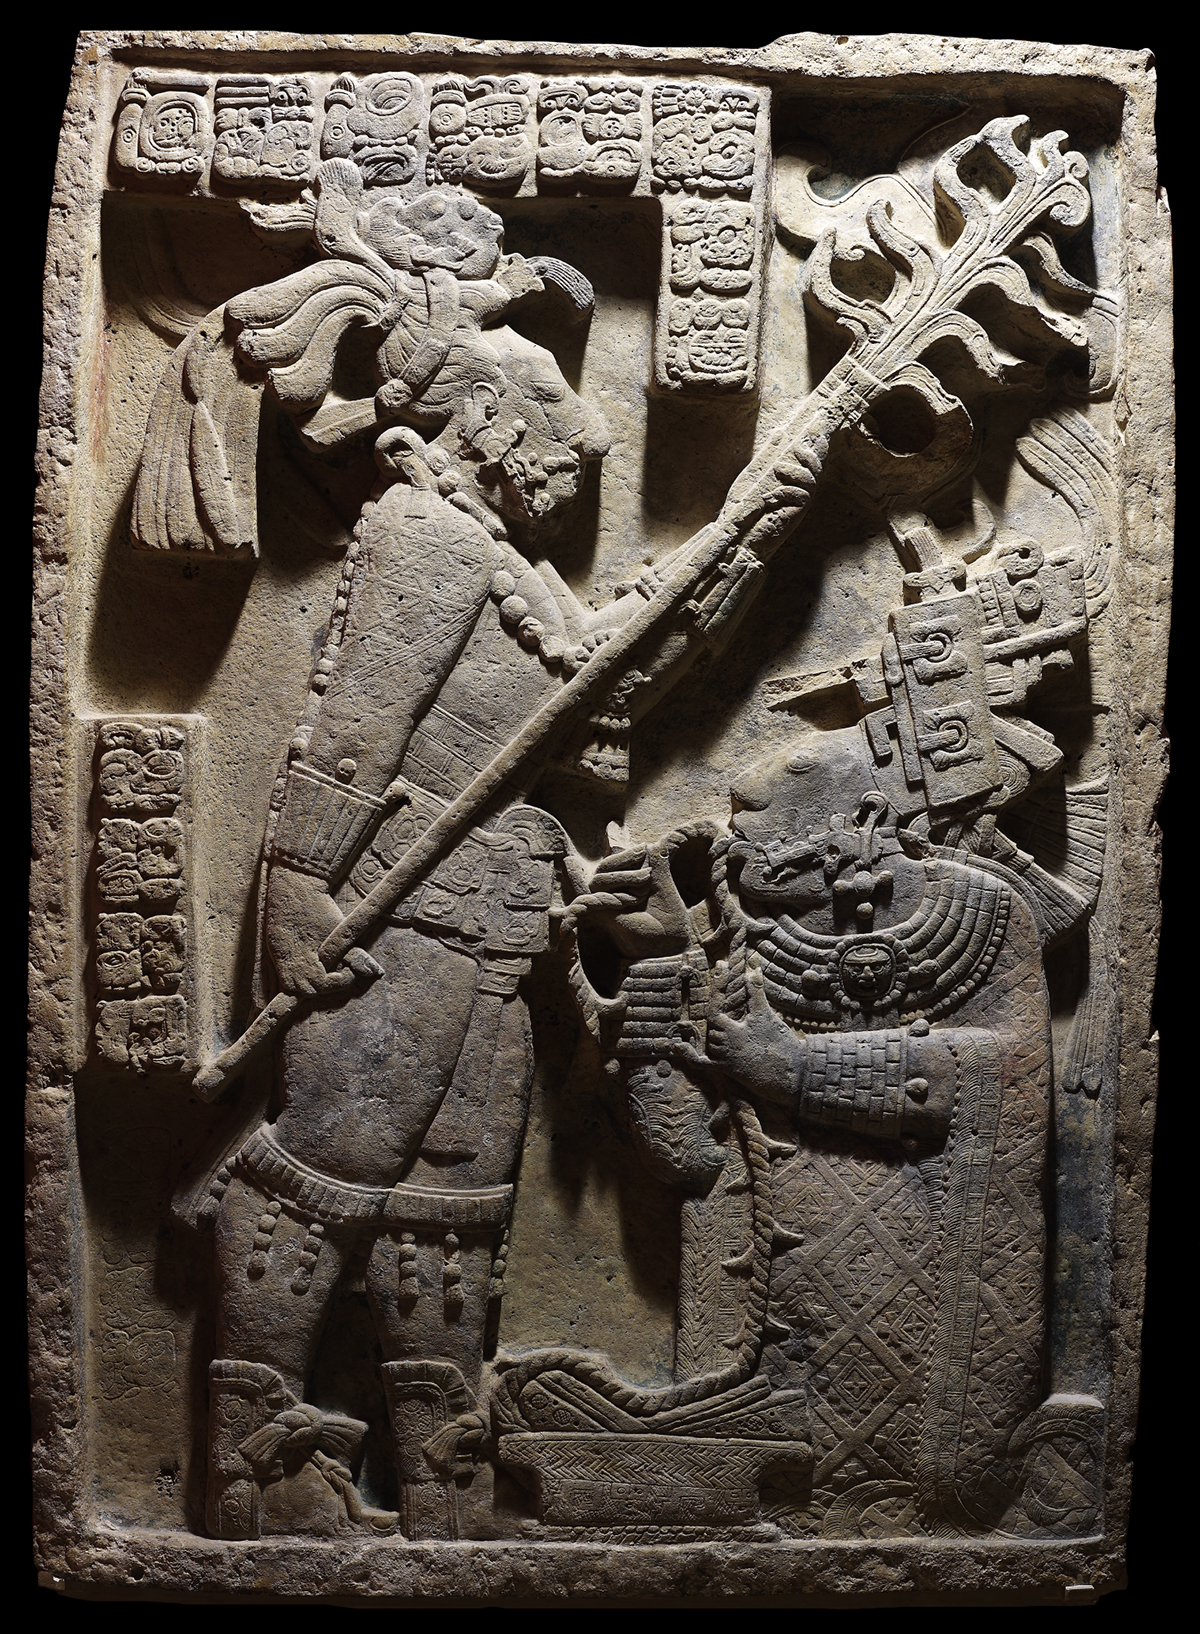 Stone lintel showing Lady K'abal Xook participating in a bloodletting ritual.